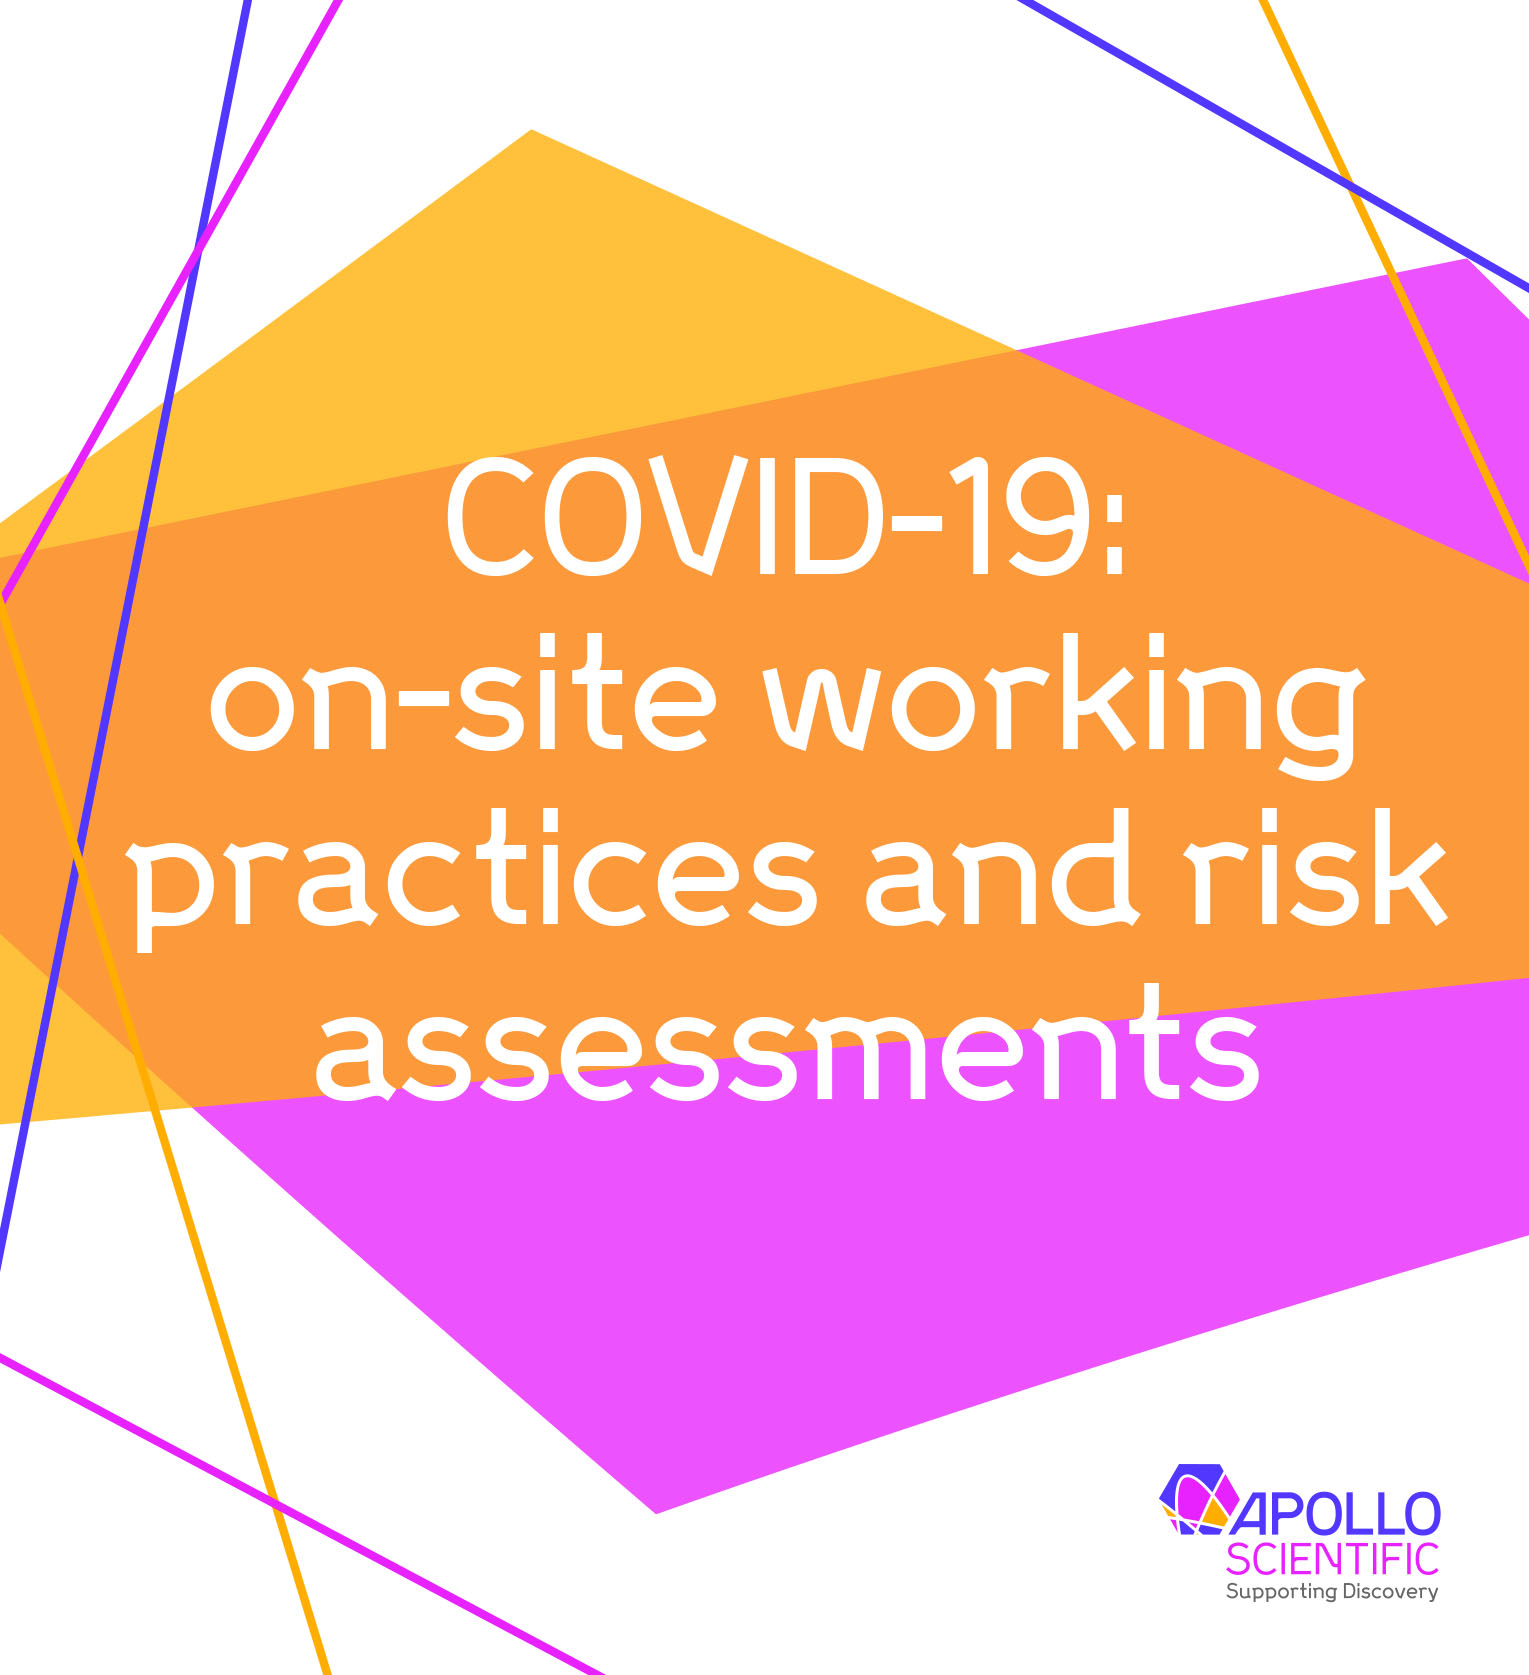 COVID-19: On site practices and risk assessments thumbnail image